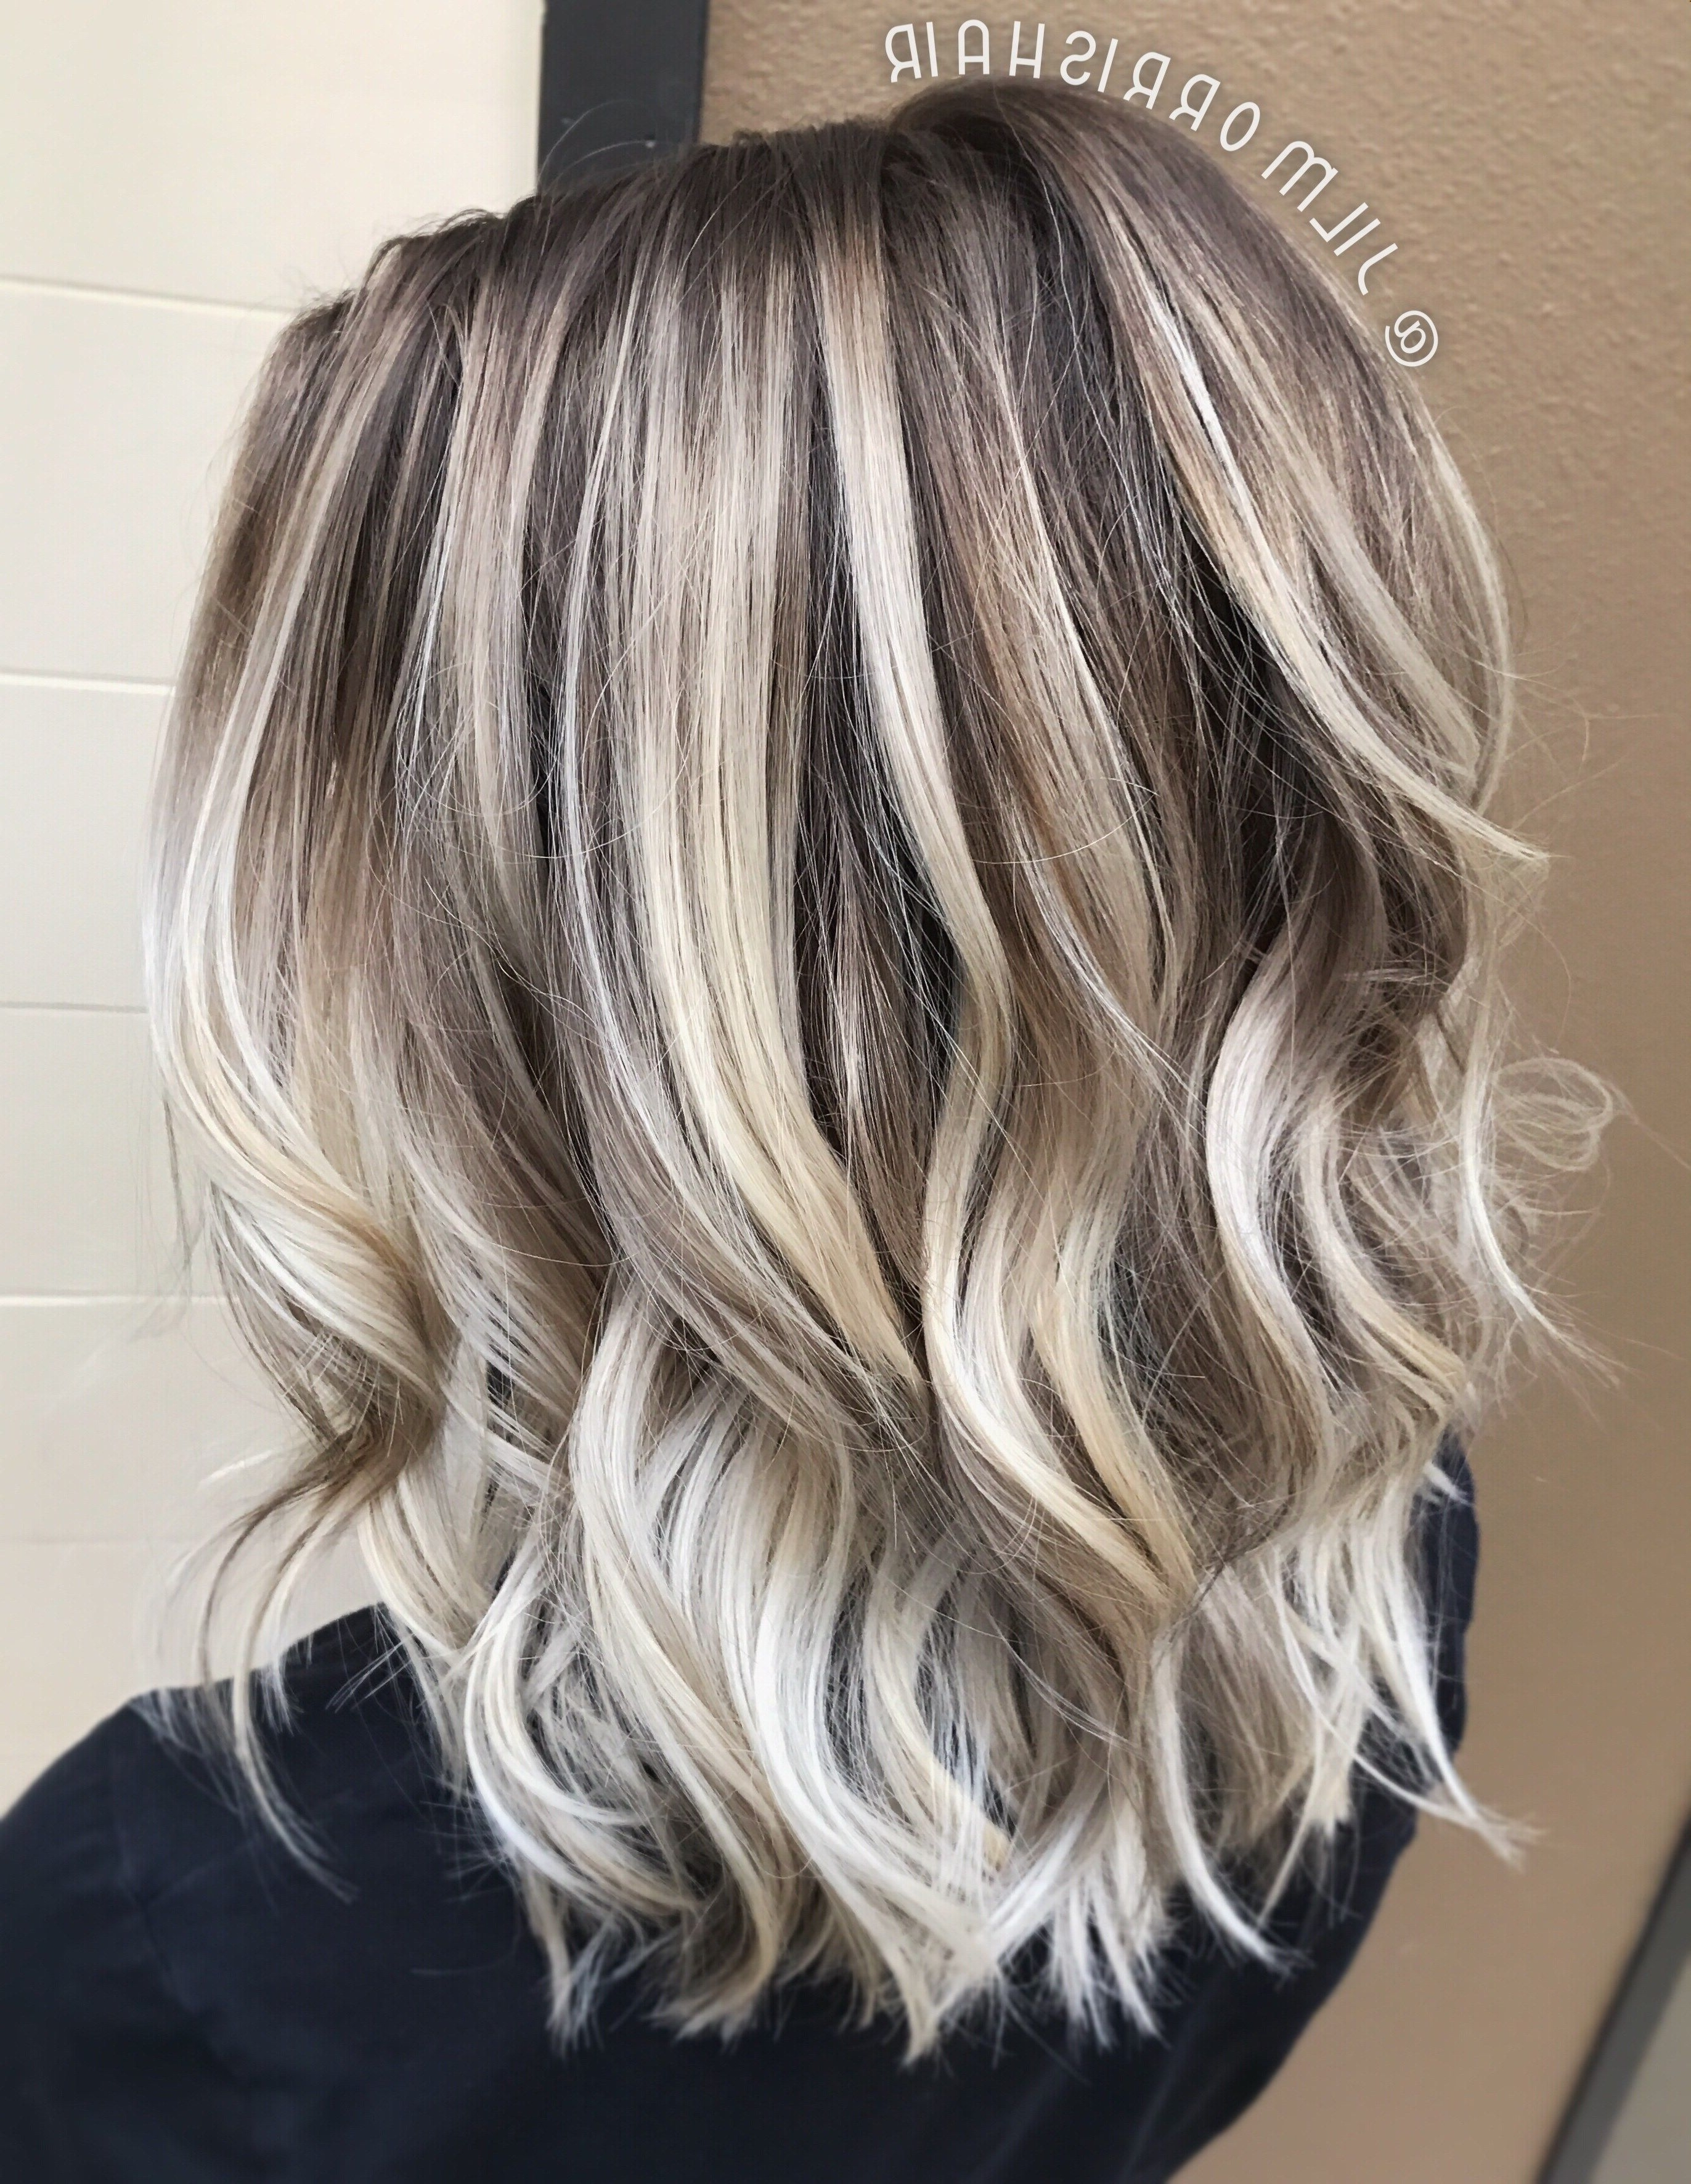 2018 Voluminous Platinum And Purple Curls Blonde Hairstyles Within Hair Highlights – Cool Icy Ashy Blonde Balayage Highlights, Shadow (View 2 of 20)